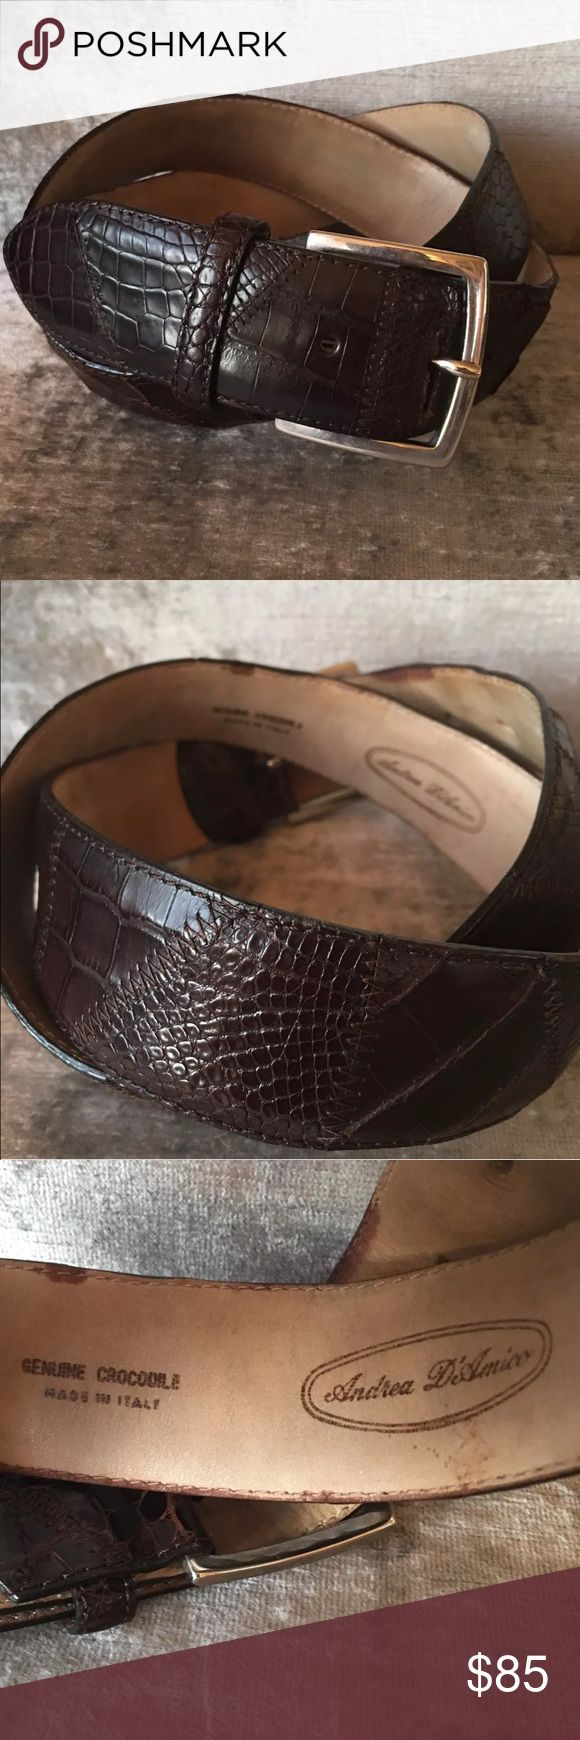 🇮🇹 CROCODILE SKIN HAND MADE BELT Sz. 37-38.5 Size 38.5 Long These items belong to a Milanese Gentleman with high quality taste. Smart and rich, this belt is made with several parts of the  crocodile skin. With its precious textures, each belt of Andrea D'amico is an  everlasting one of a kind piece.  Retail at 450 Euro  Thanks for looking! Andrea D'Amico Accessories Belts